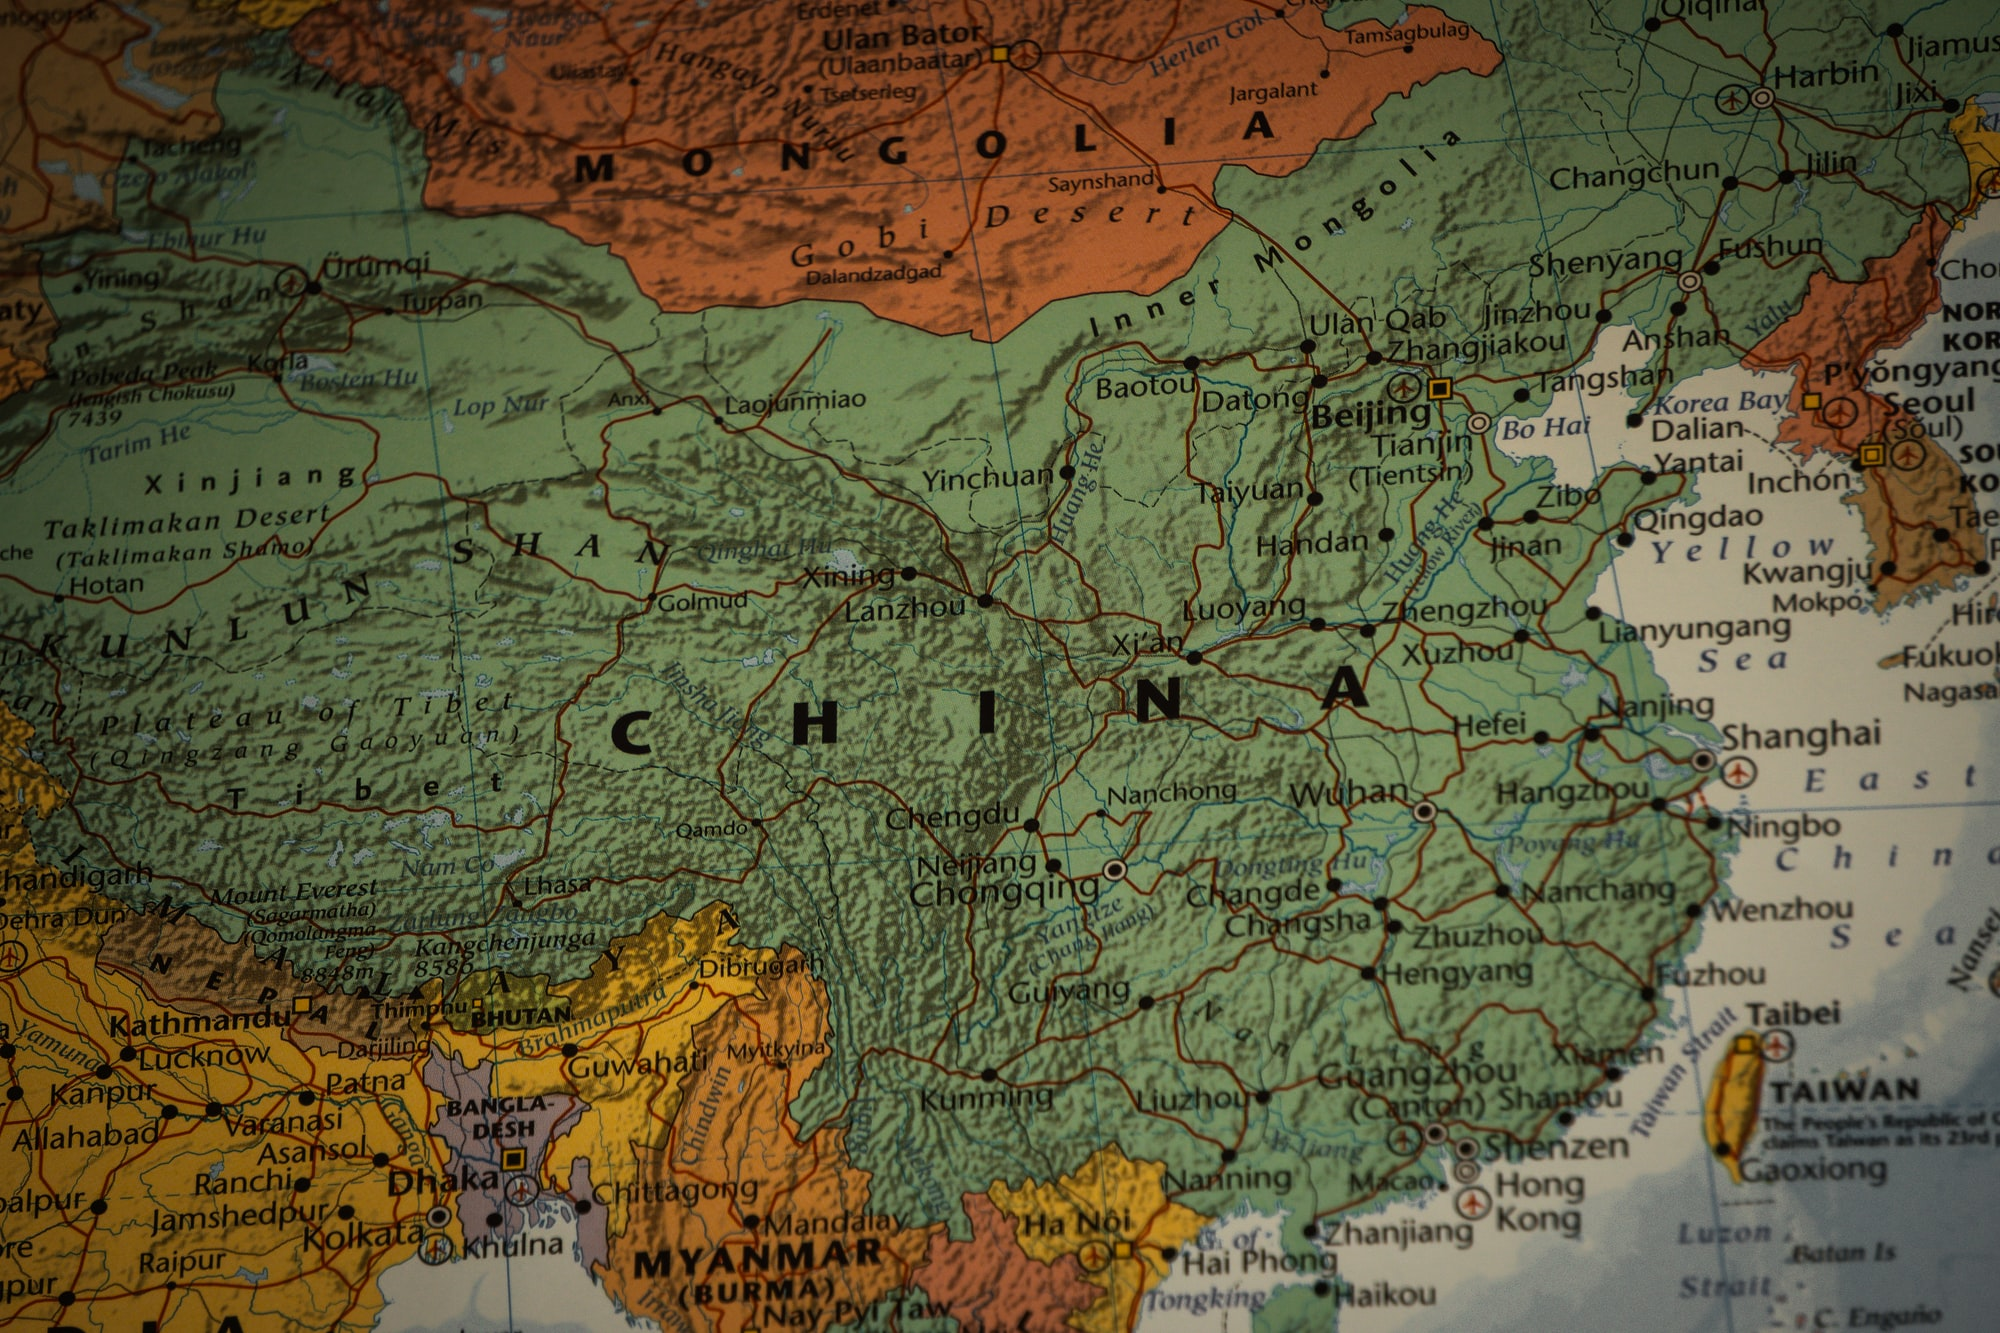 China as pictured on the world map, includes coronavirus region wuhan.